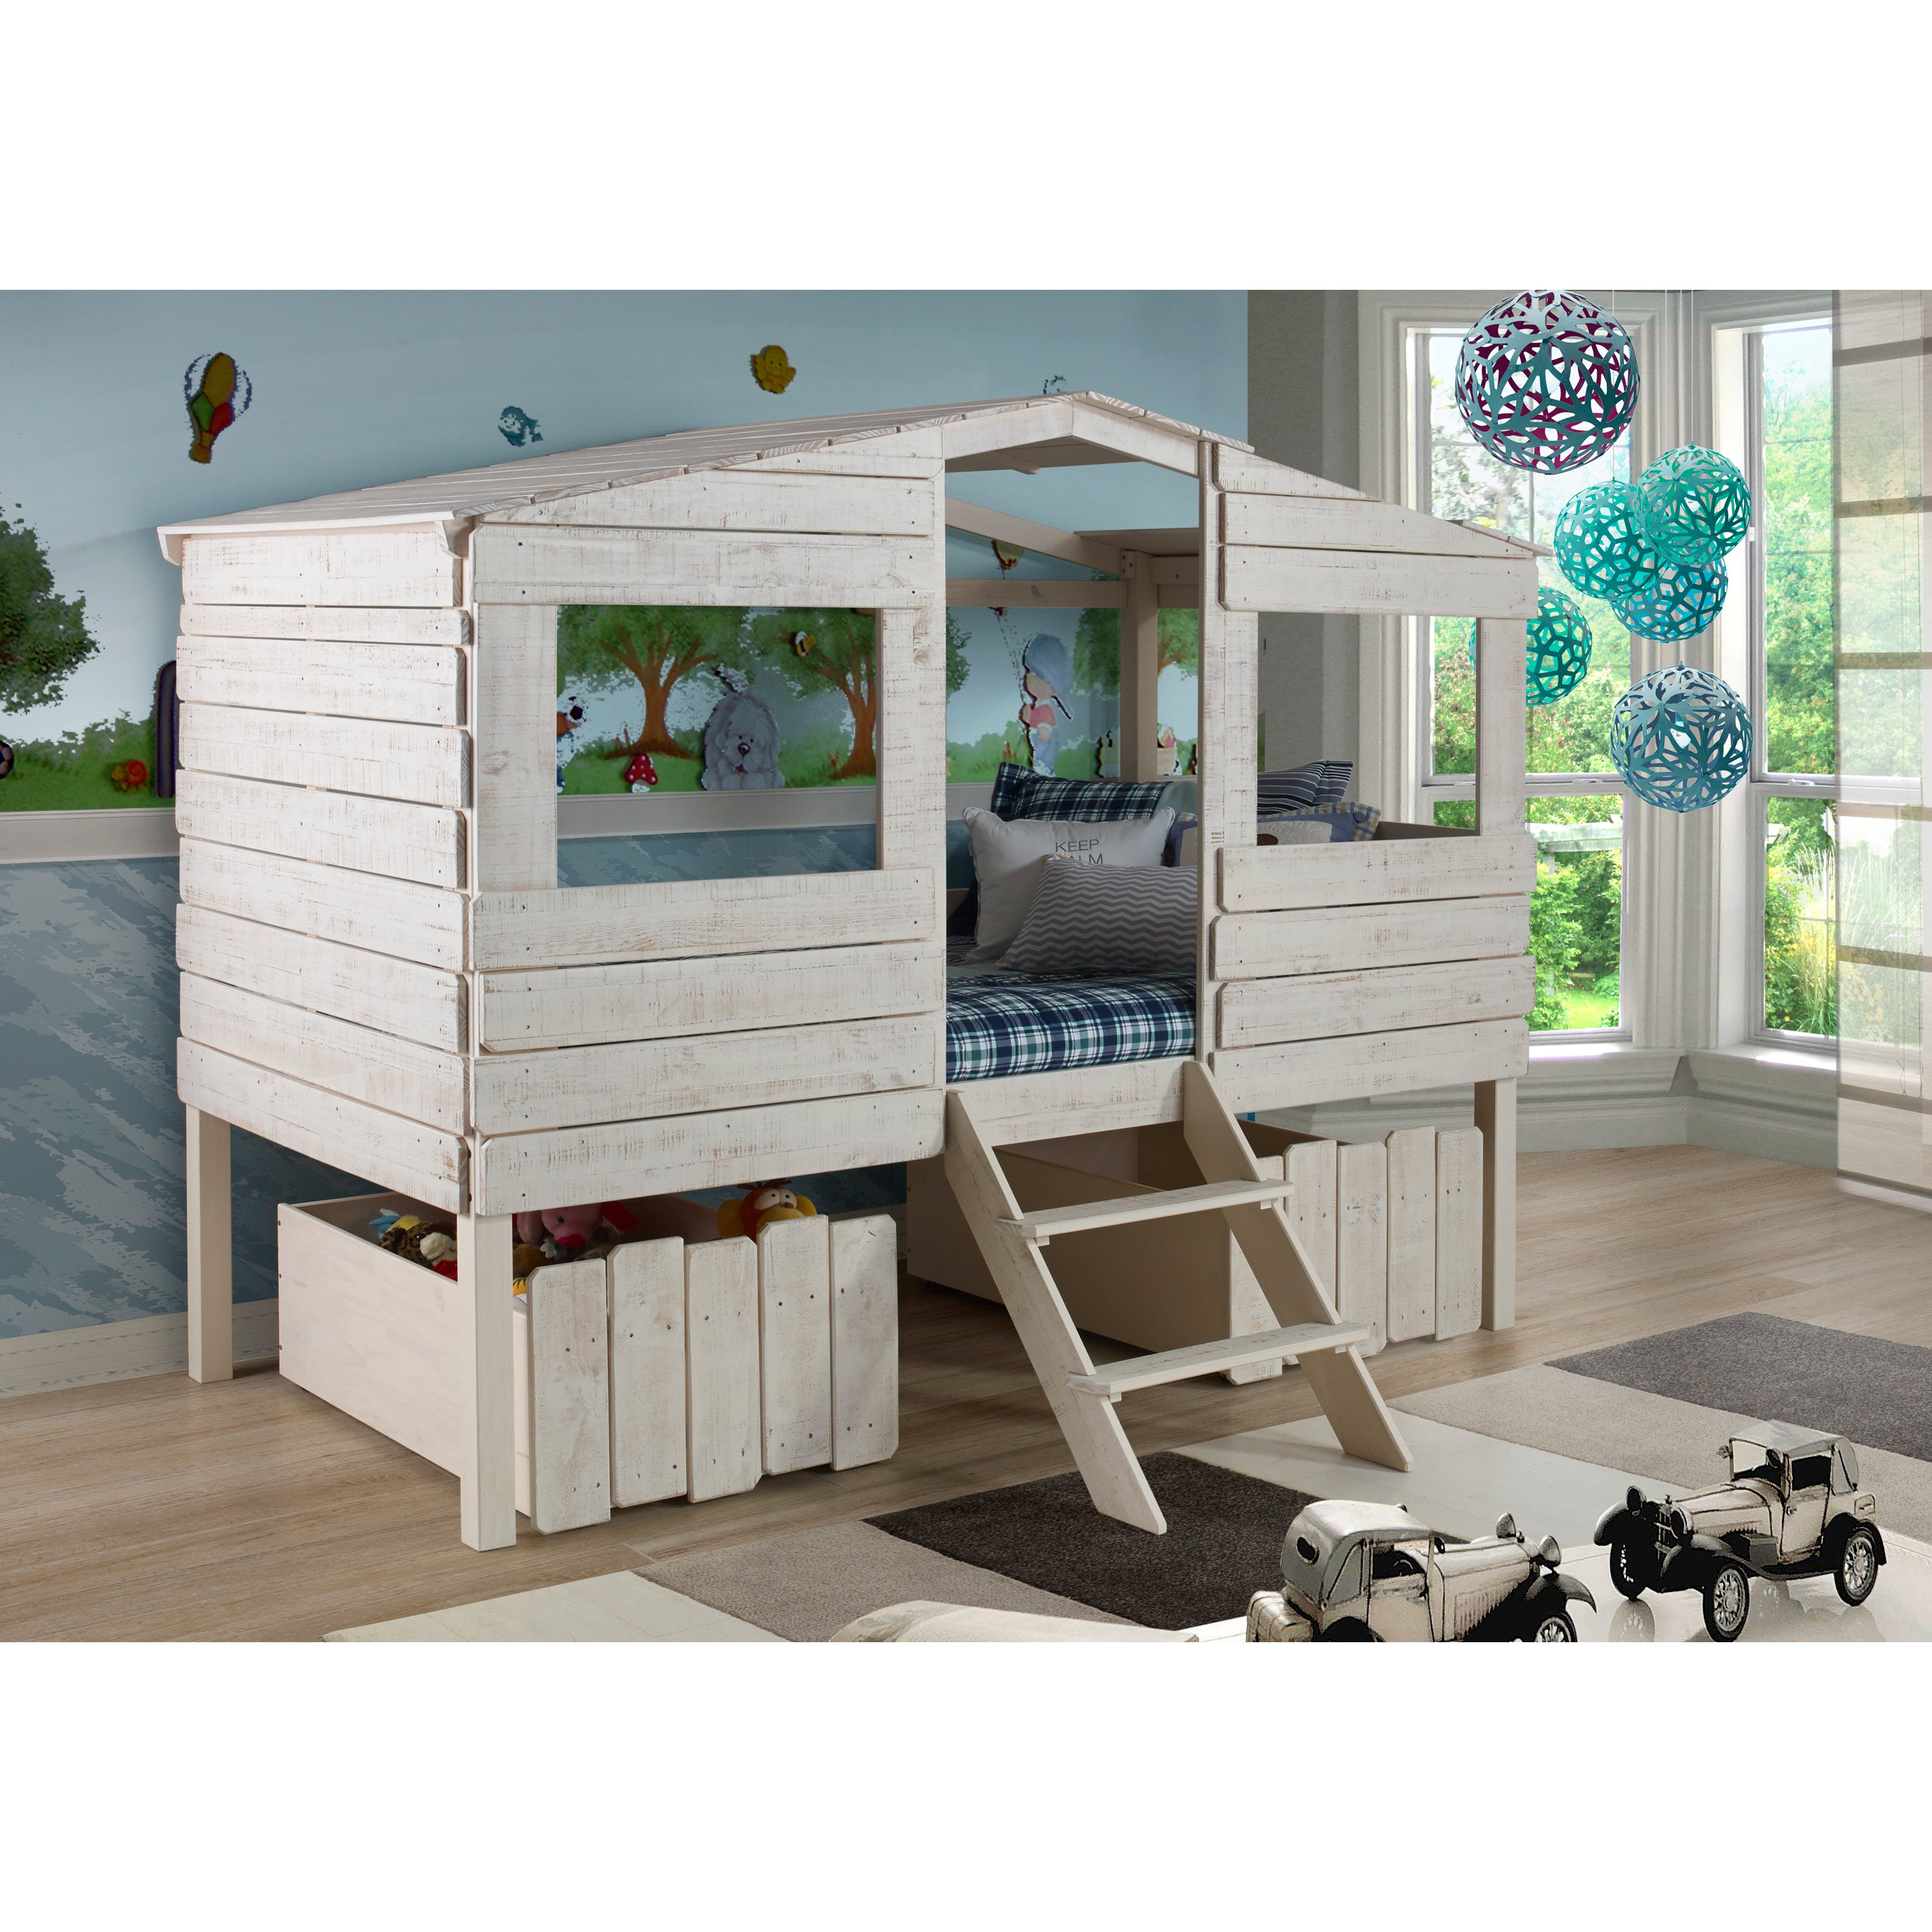 Donco Kids Rustic Sand Twin Tree House Loft Bed with Stor...